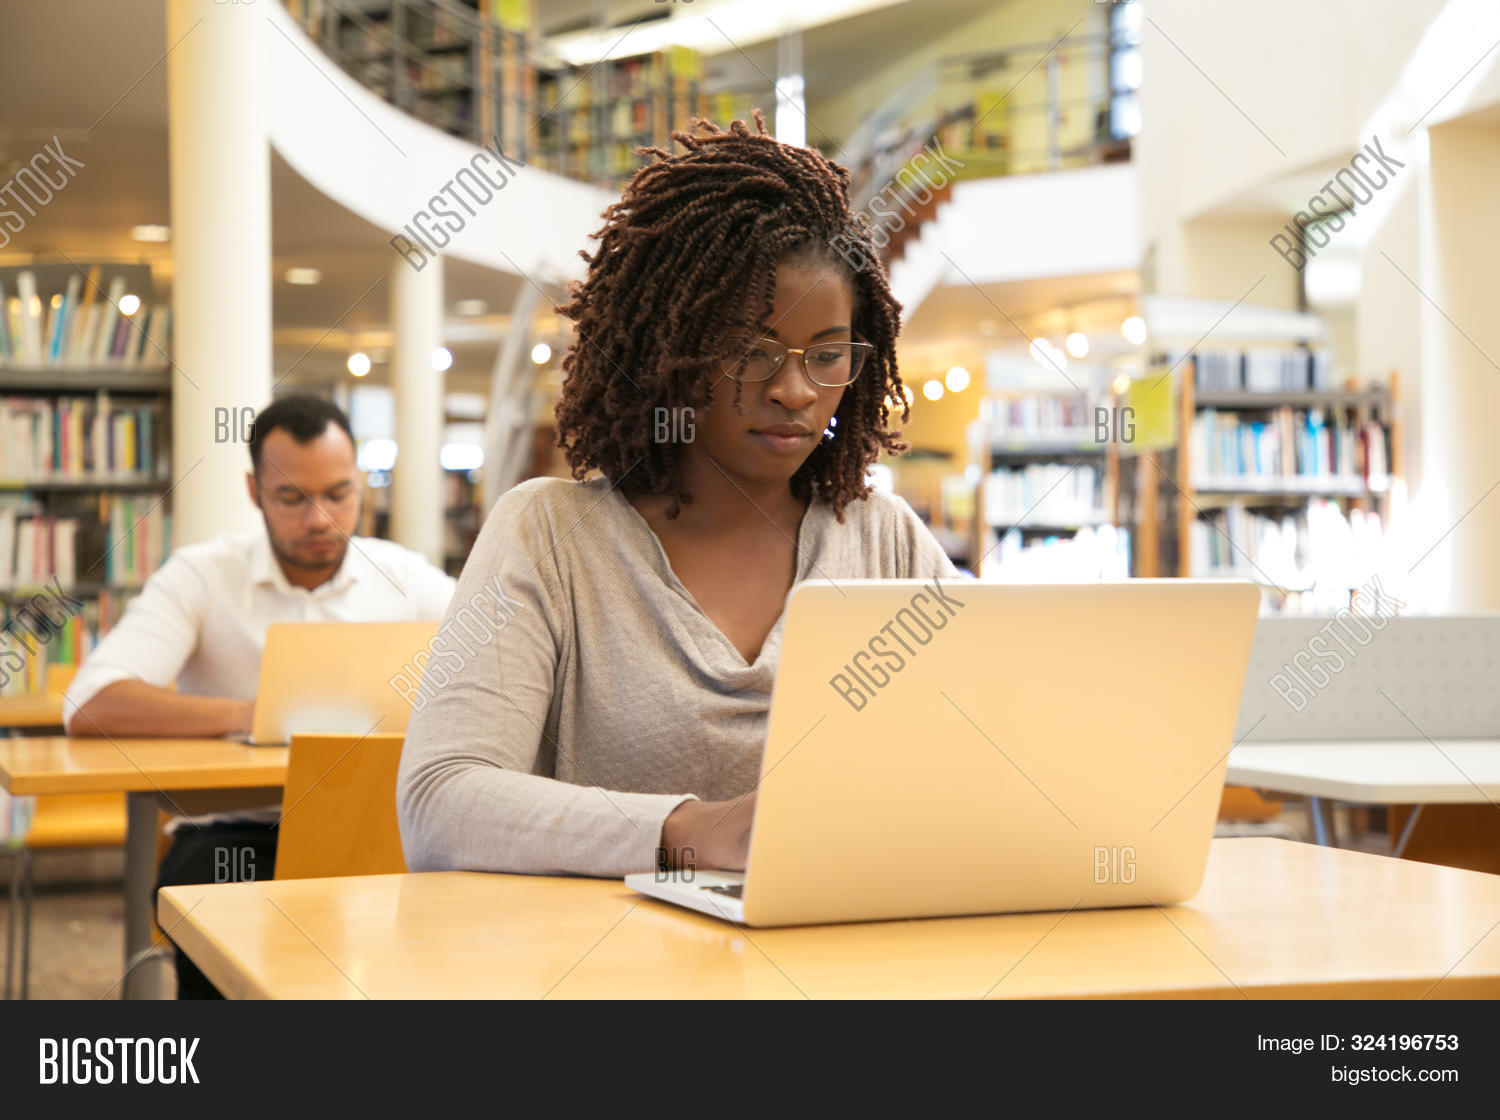 Serious African American Student Working On Research Paper In Library. People Sitting At Desks And U